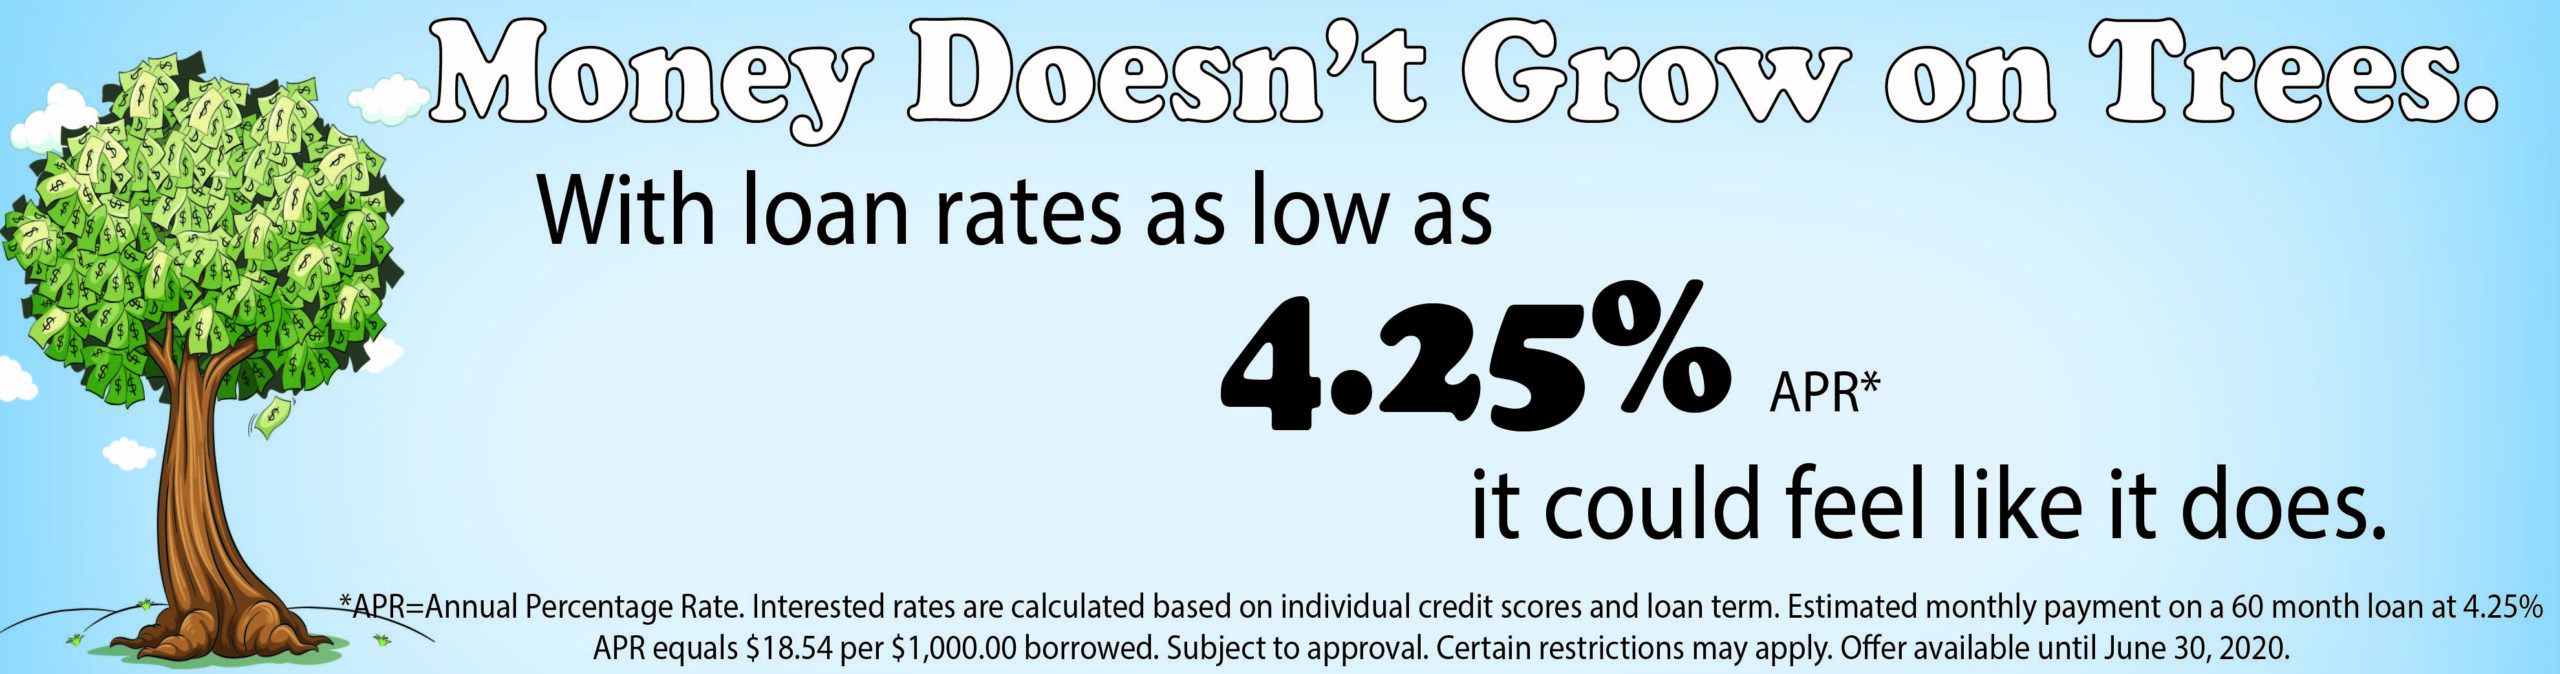 Money doesn't grow on trees. With loan rates as low as 4.25% it could feel like it does. Conditions apply.